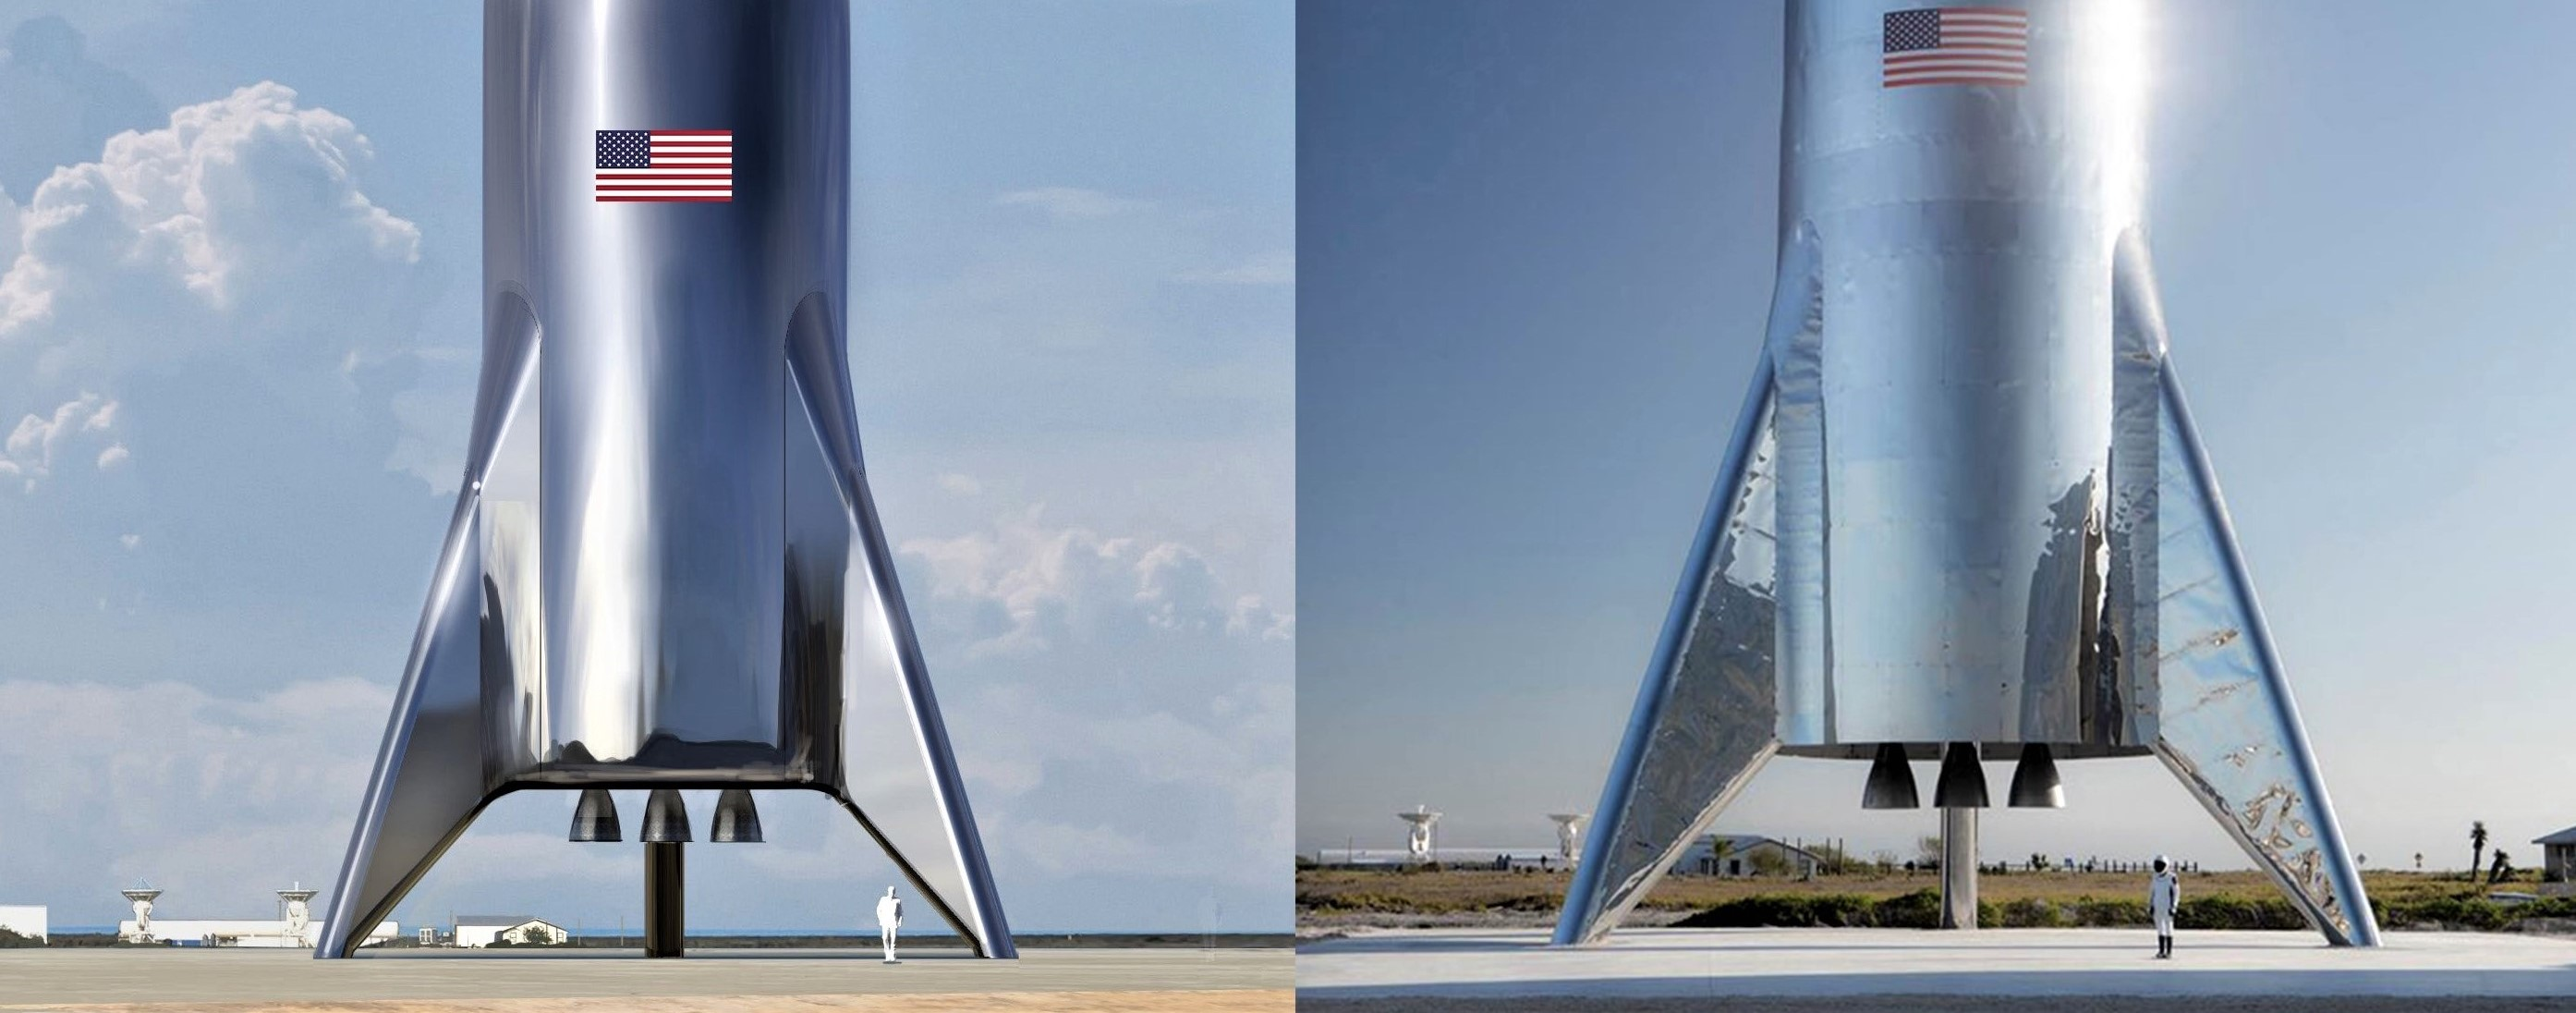 BFH BFS Starhopper render and photo (Elon Musk) 1